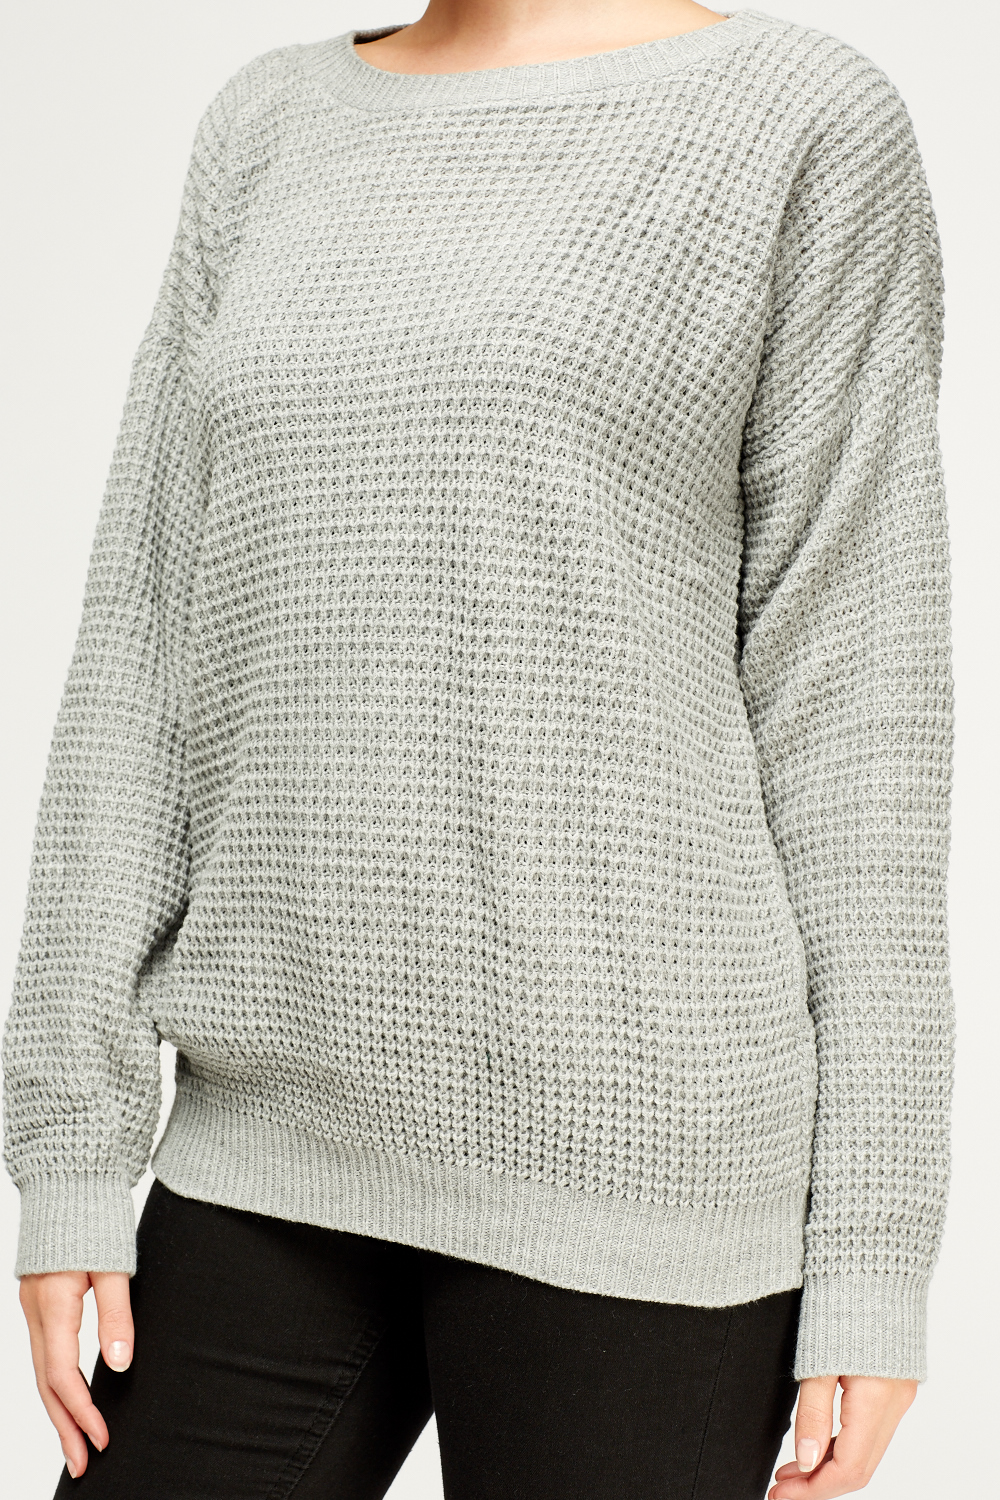 Grey Knitted Jumper - Just ?5